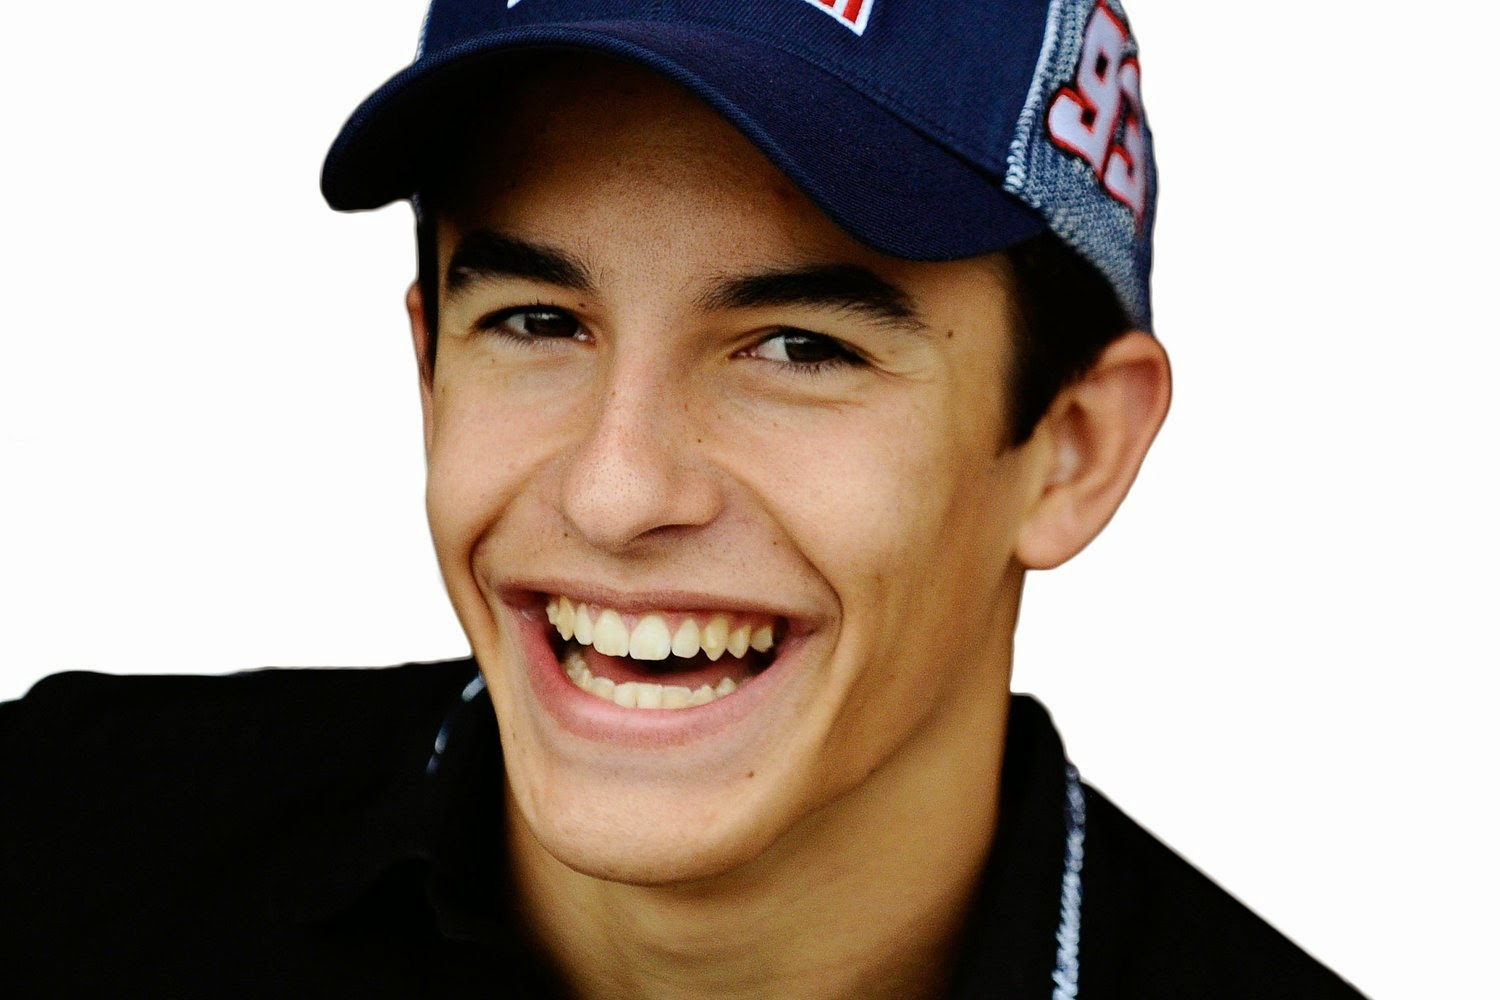 Marc Marquez Net Worth